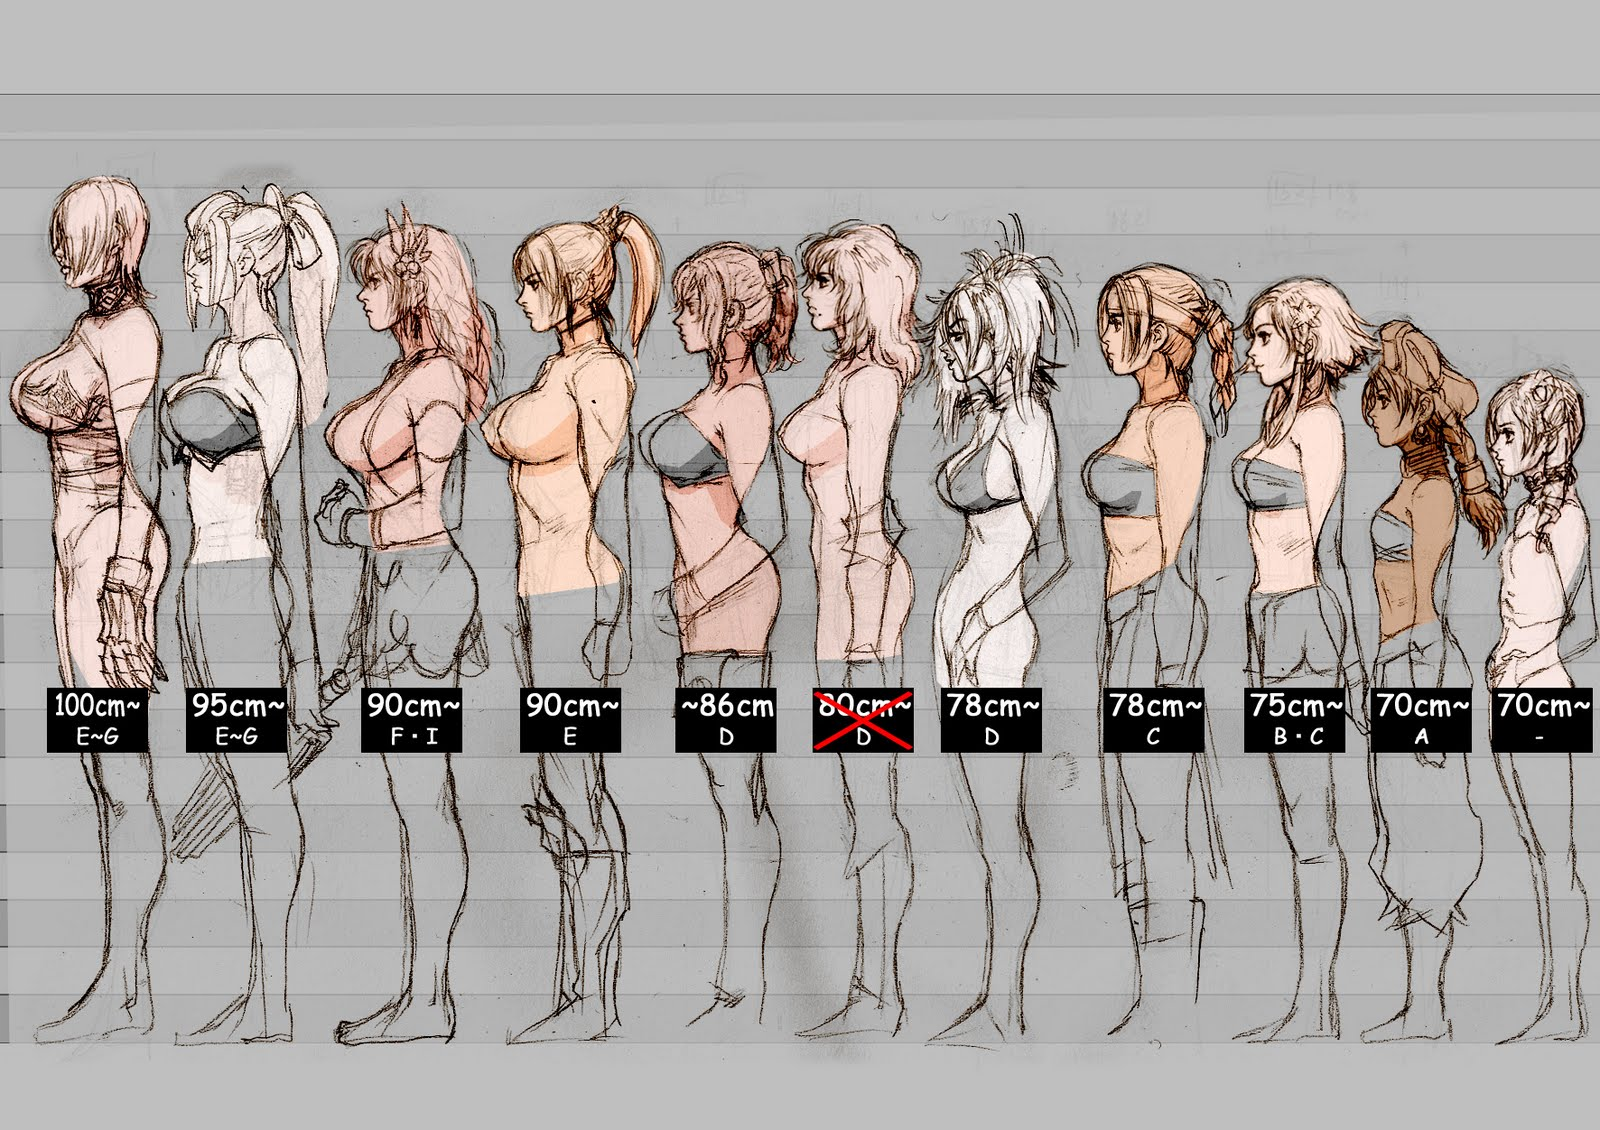 Breast Sizes Chart This Breast Size Regulator